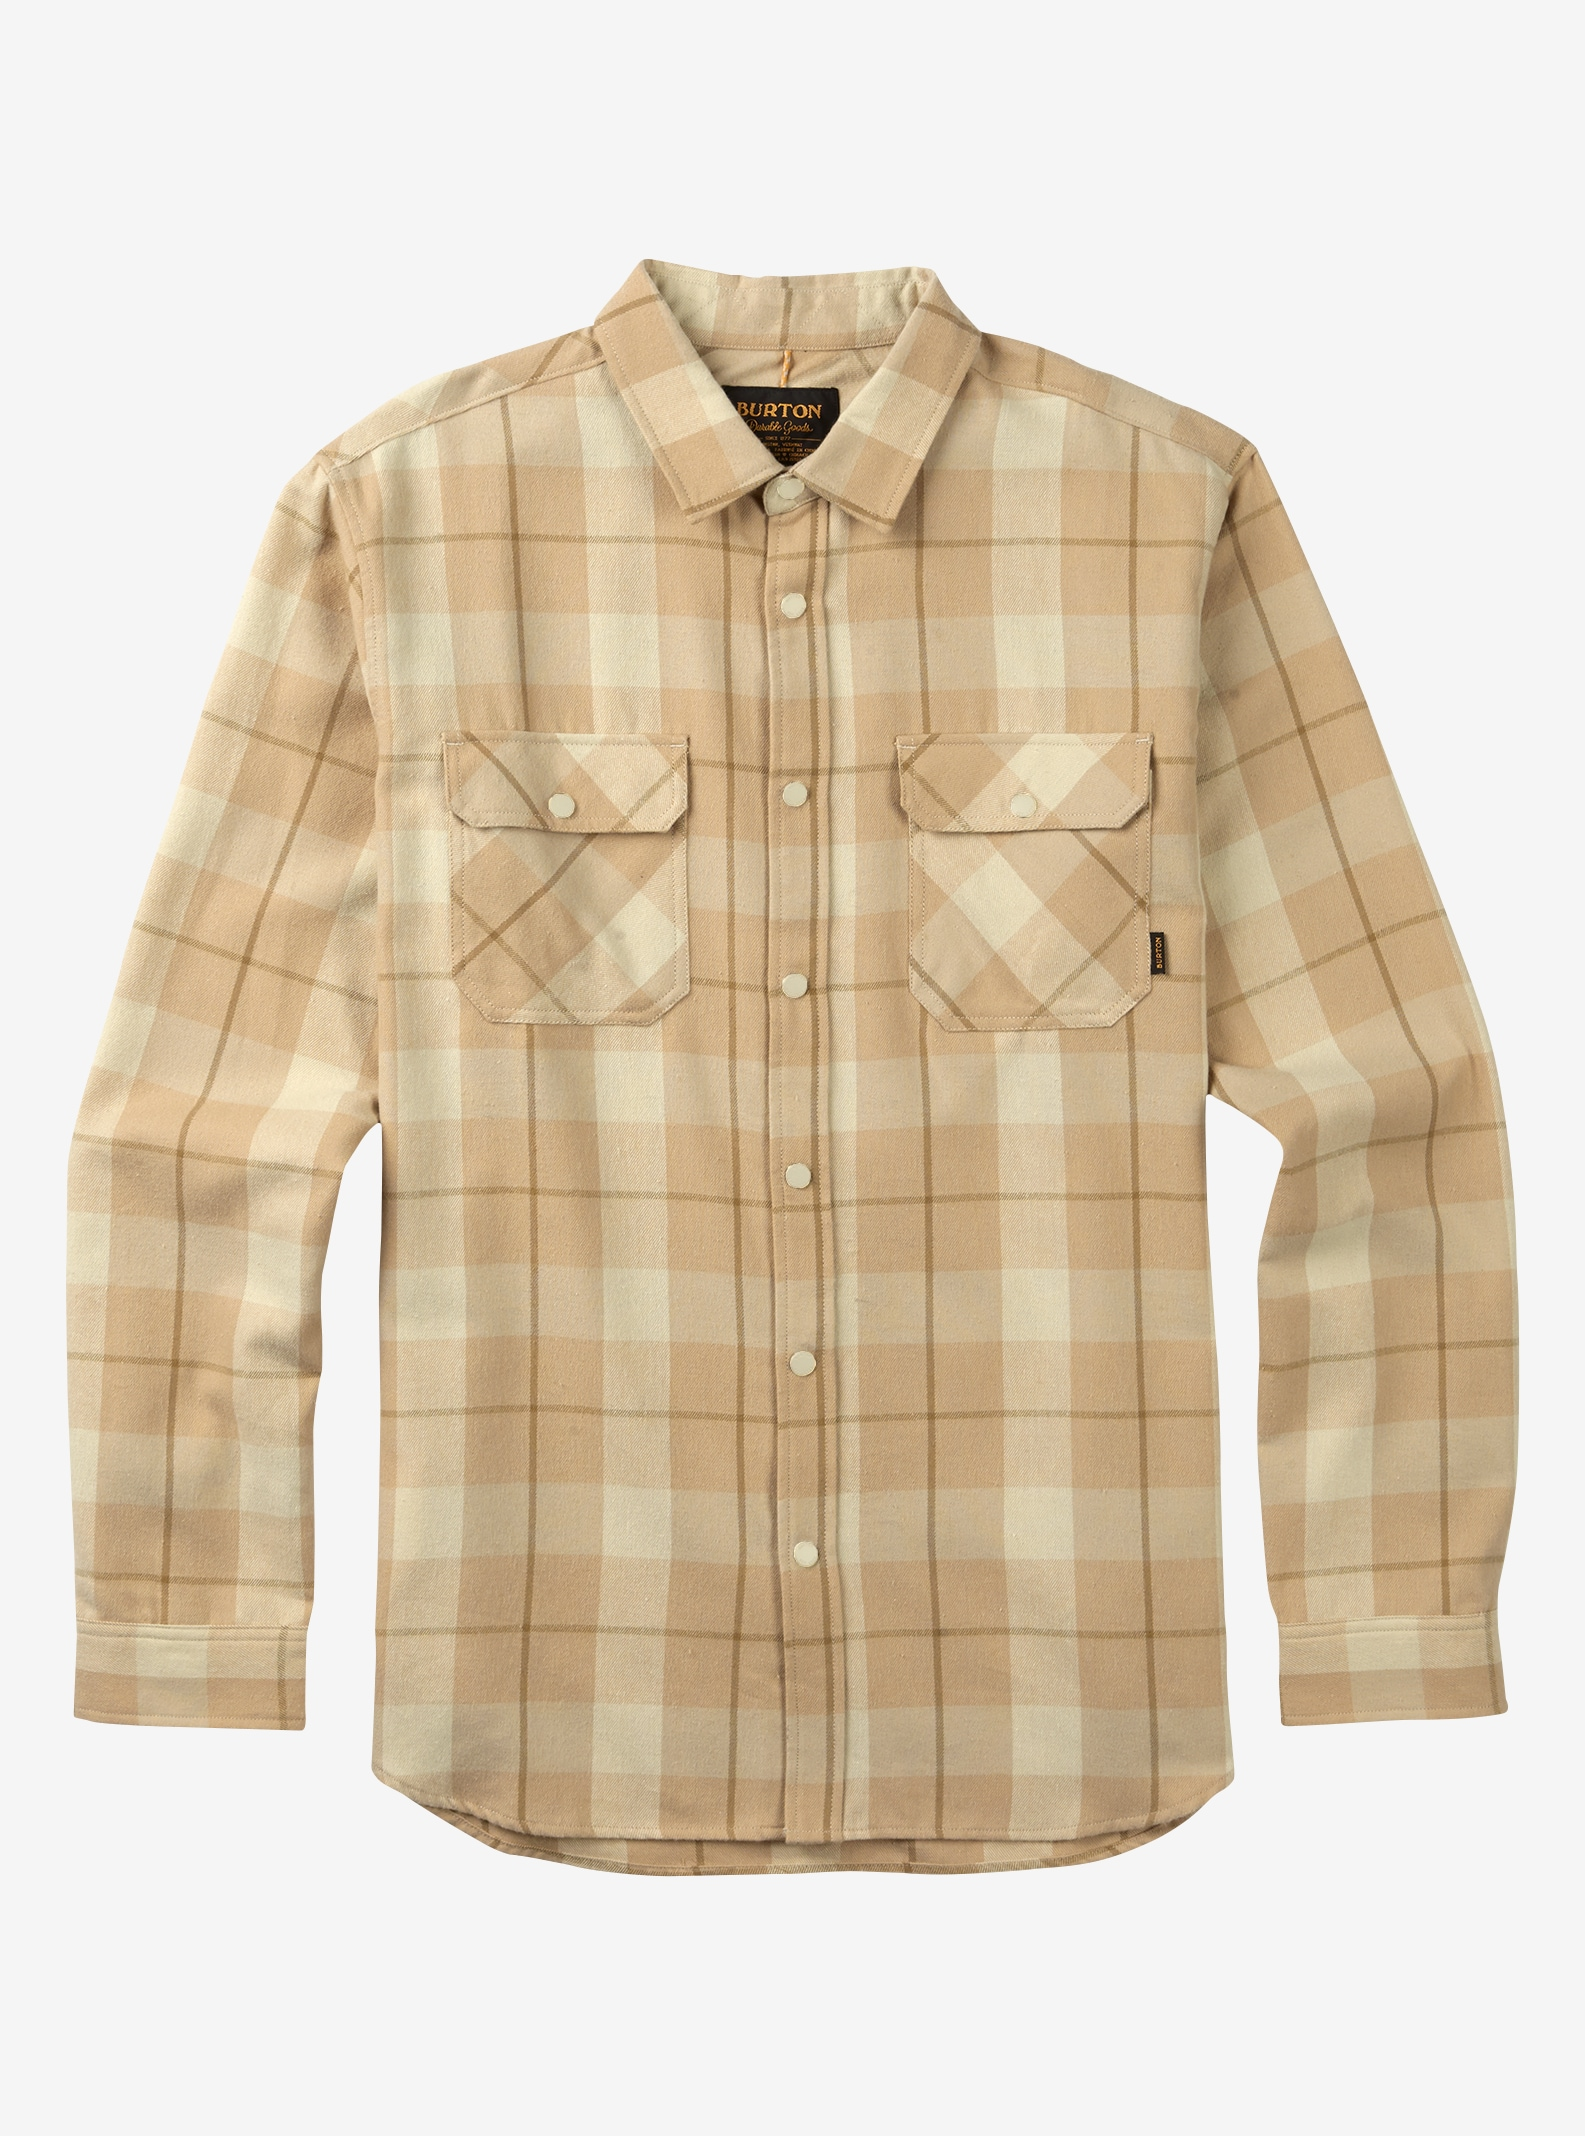 Men's Burton Brighton Tech Flannel shown in Canvas Boxelder Plaid